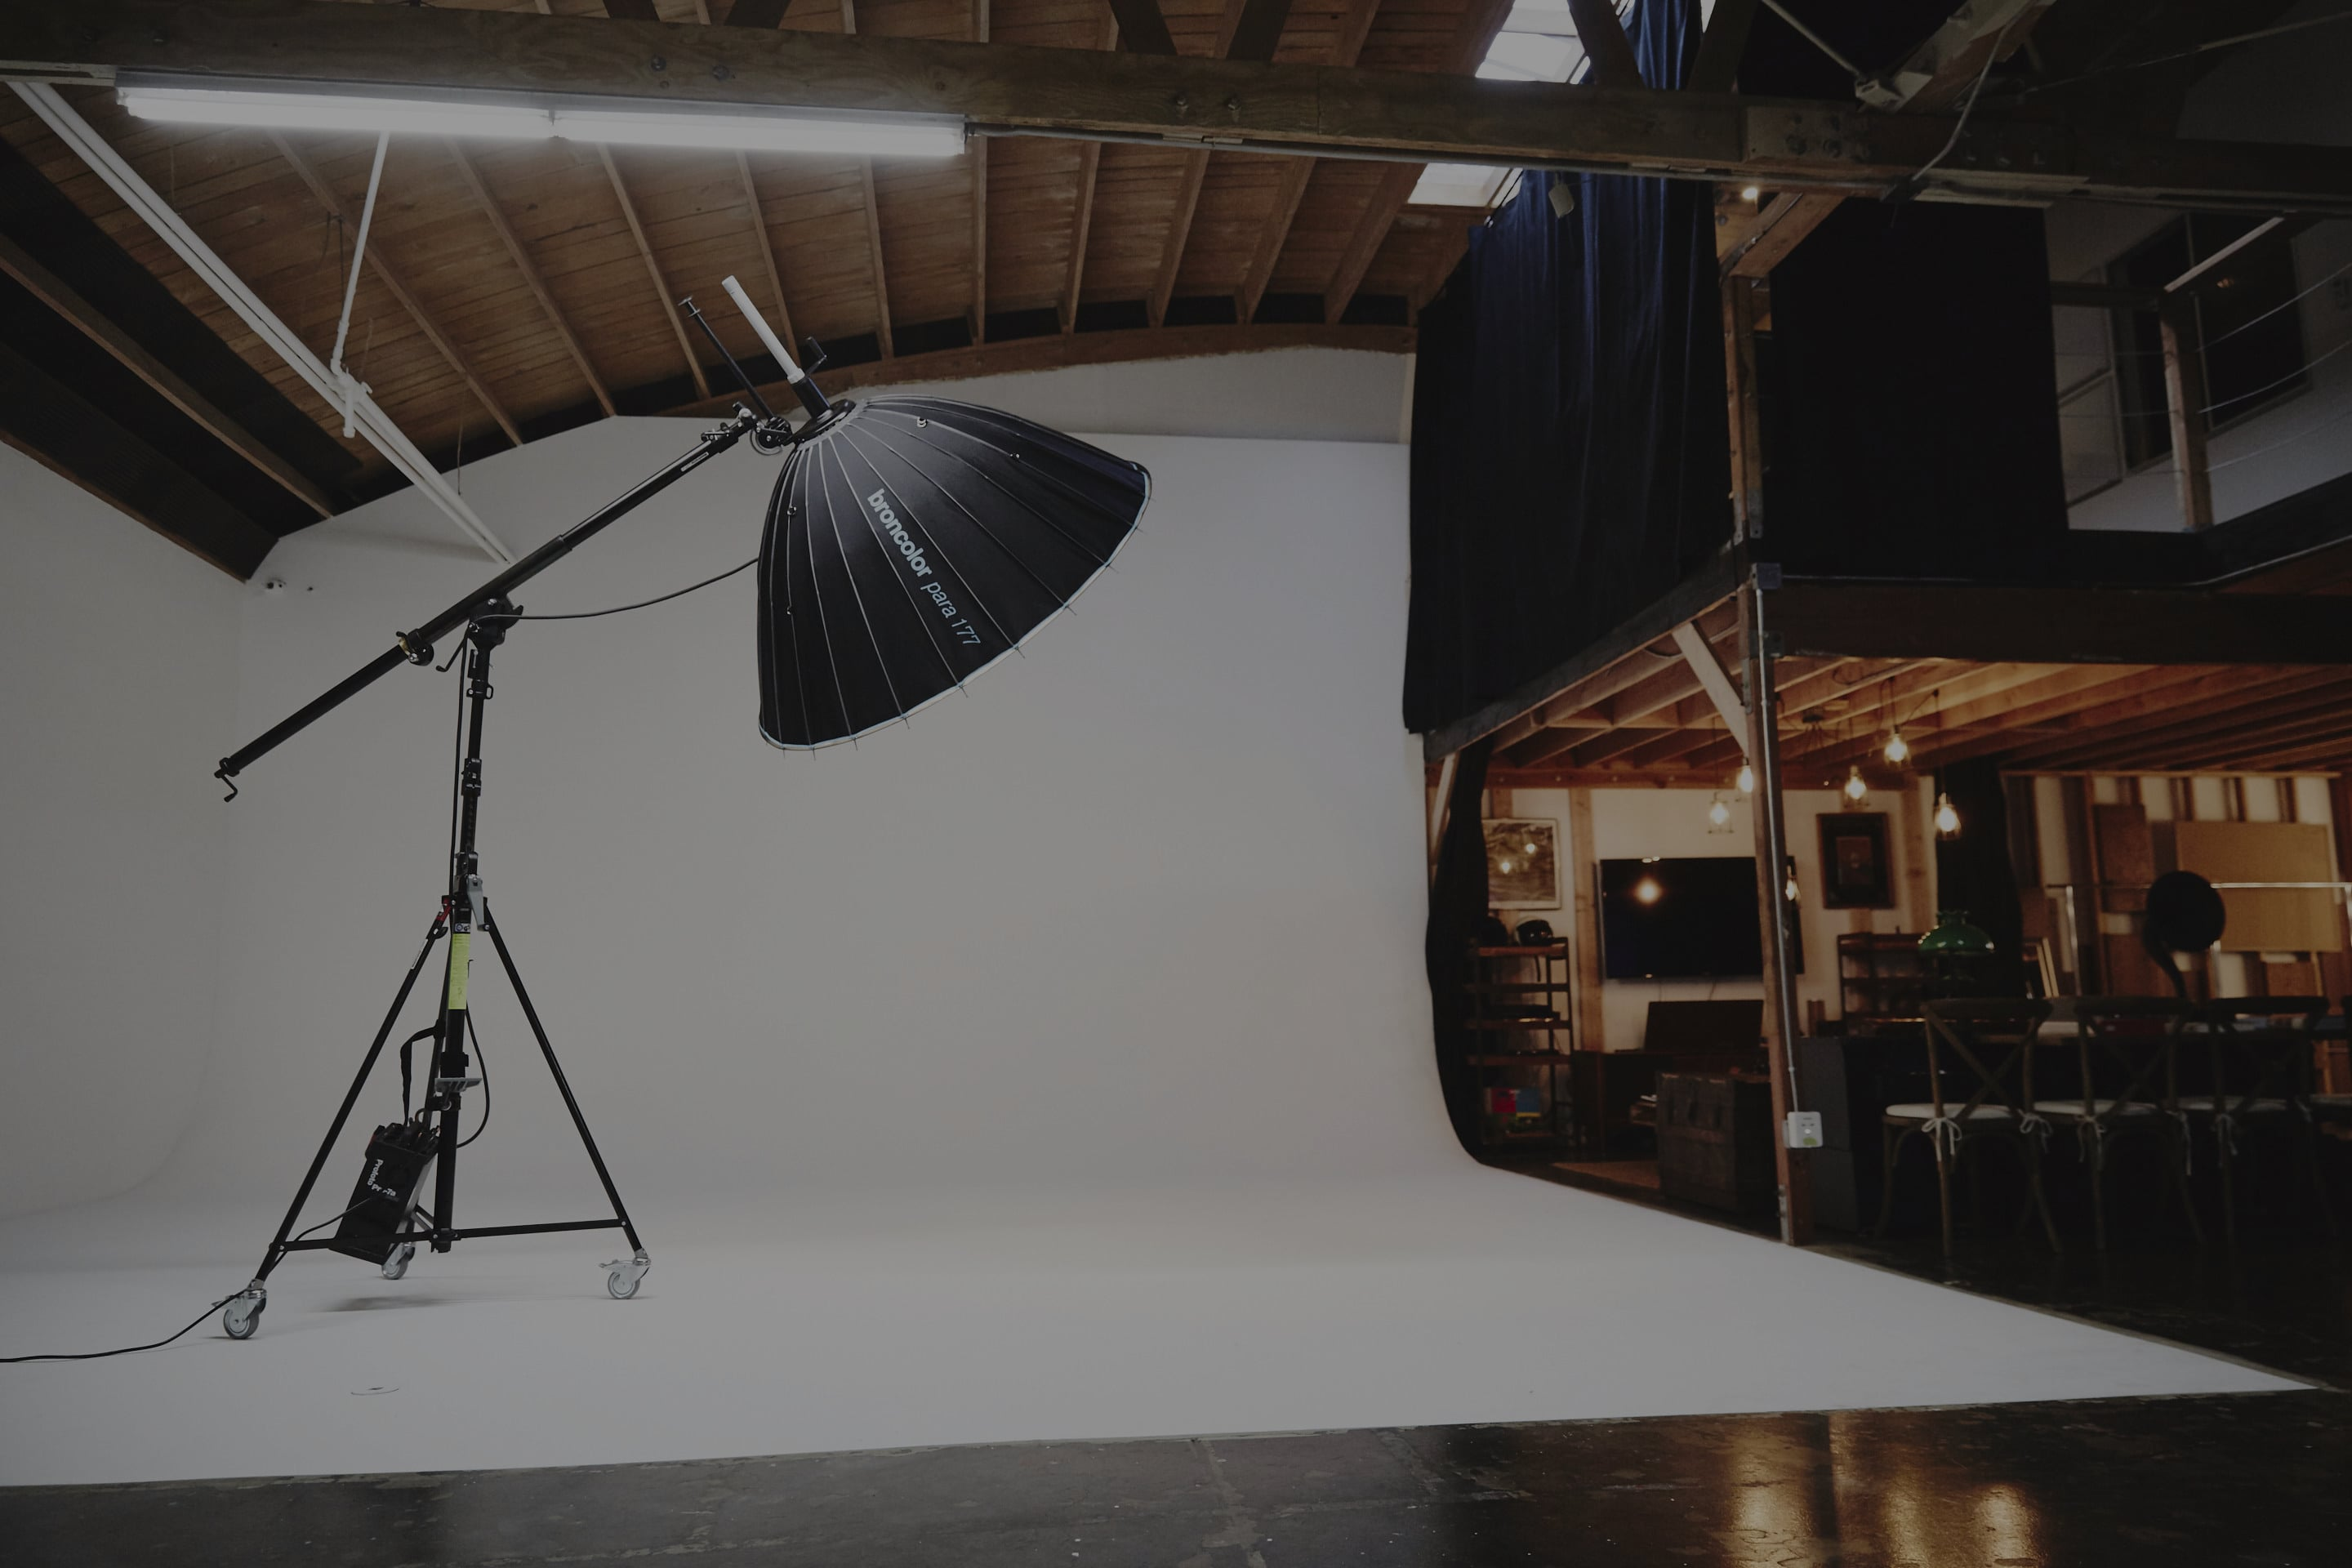 unique photo shoot locations for rent new york ny